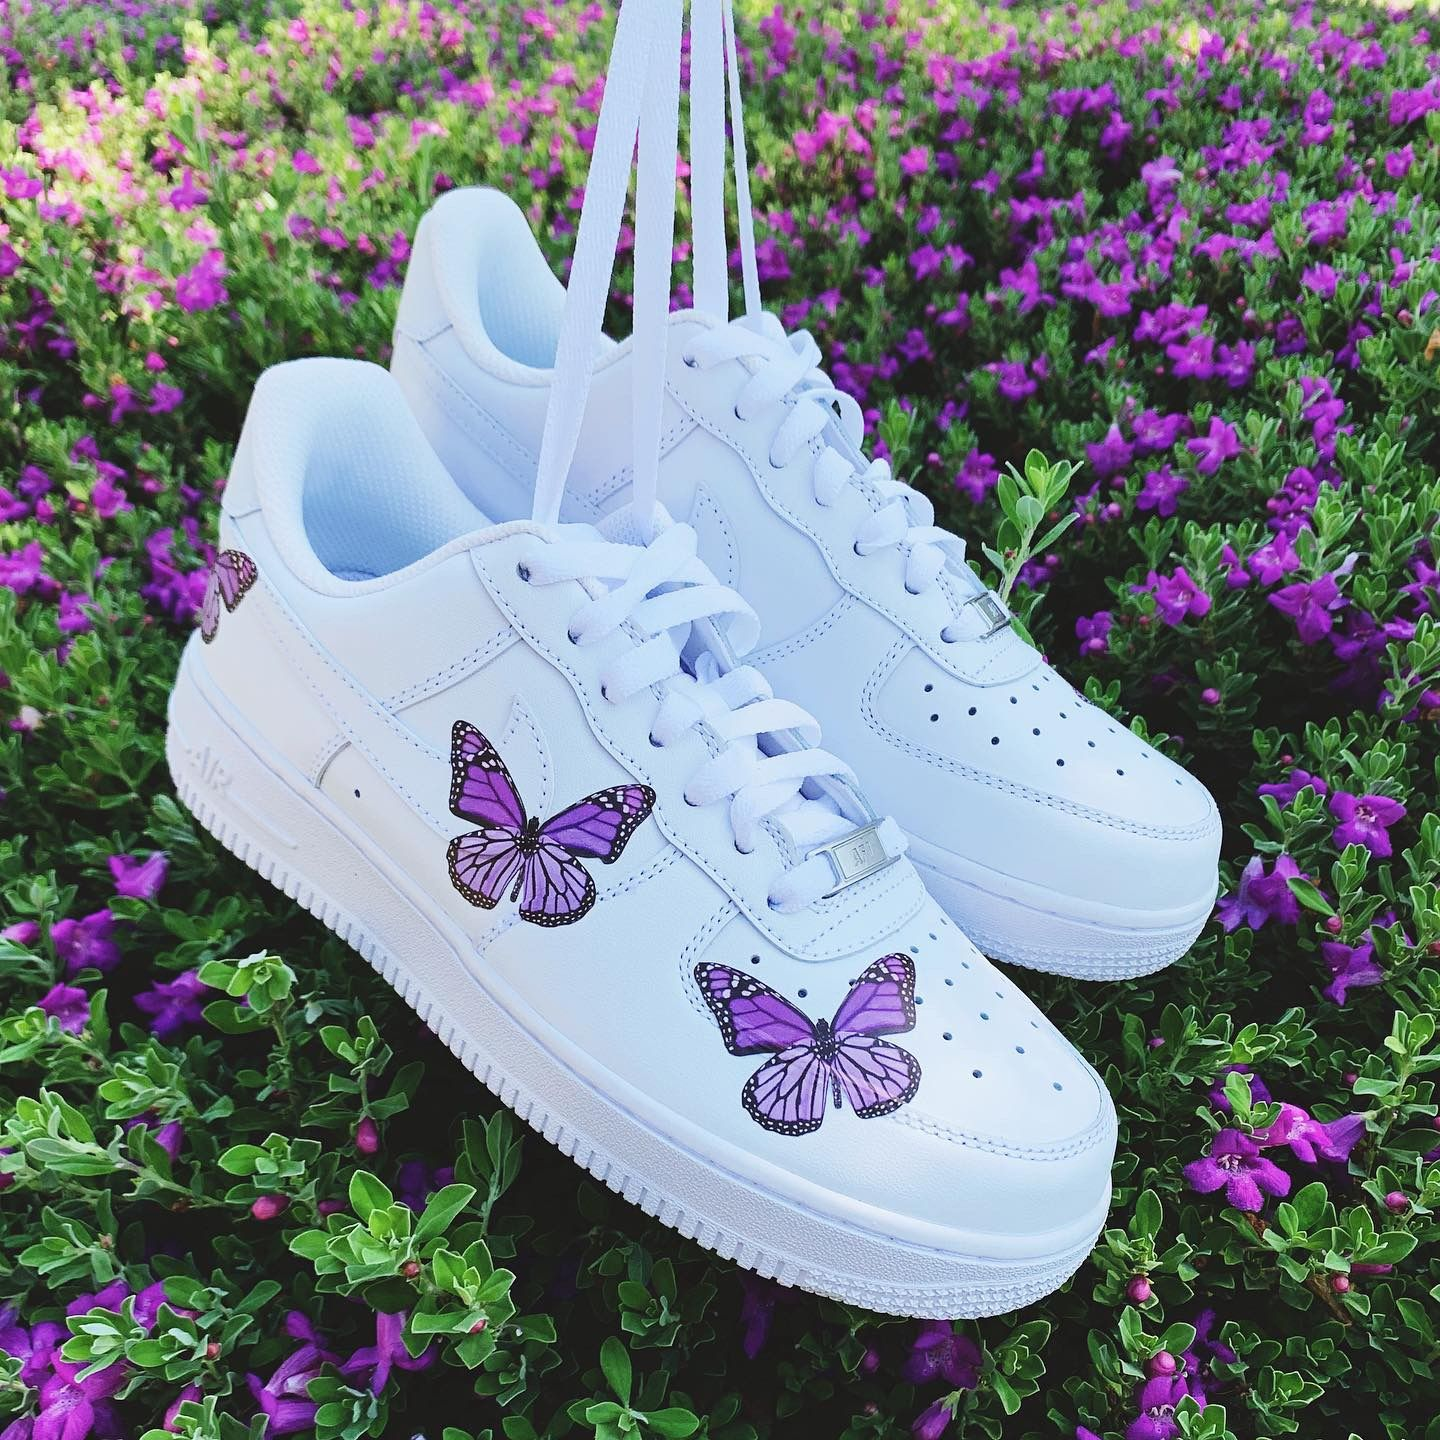 Purple butterfly Nike Shoes🦋 All nike shoes, Butterfly